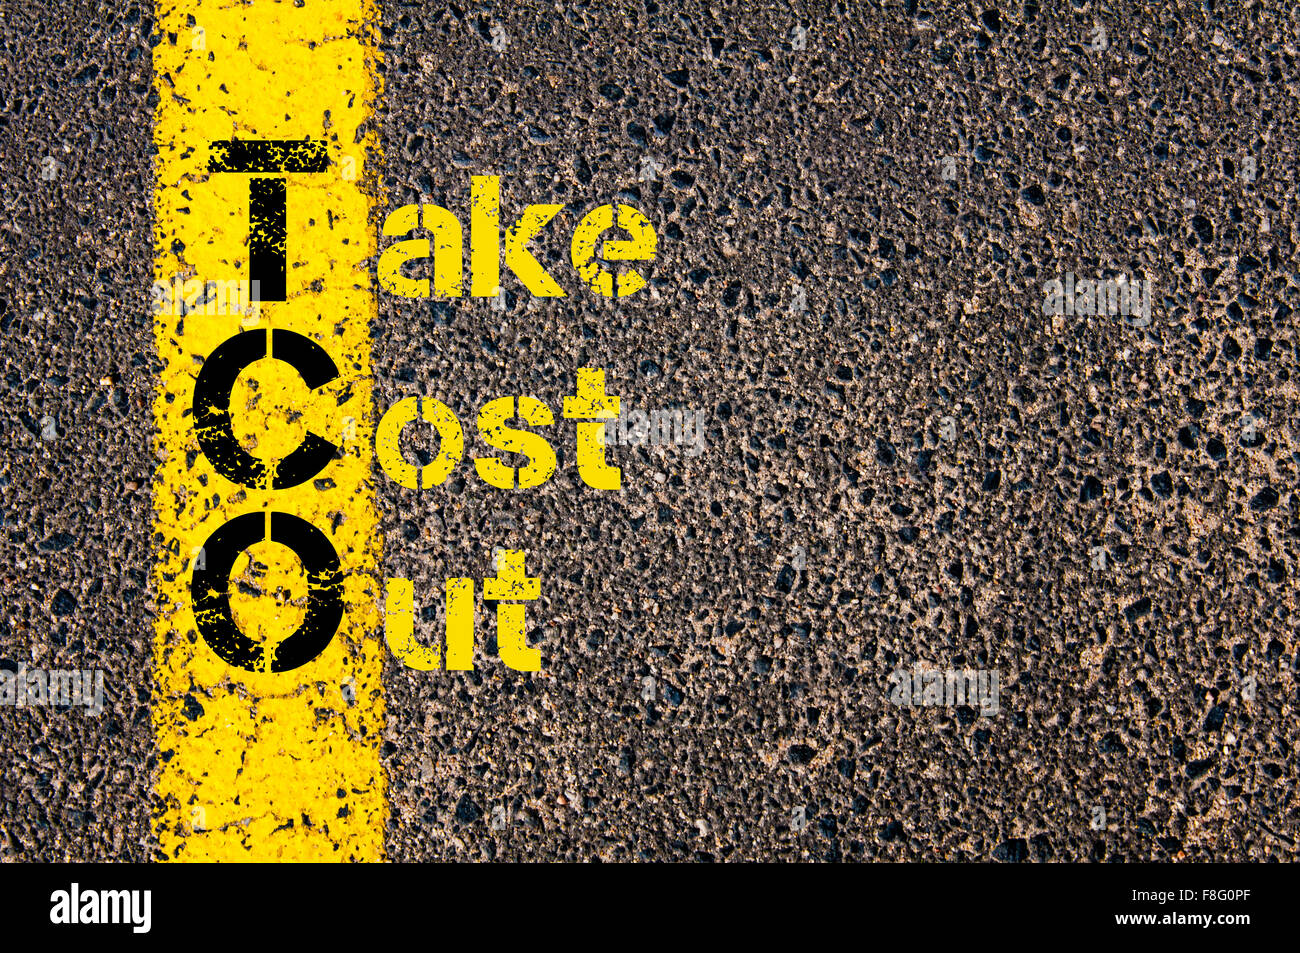 Concept image of Accounting Business Acronym TCO Take Cost Out written over road marking yellow paint line. Stock Photo